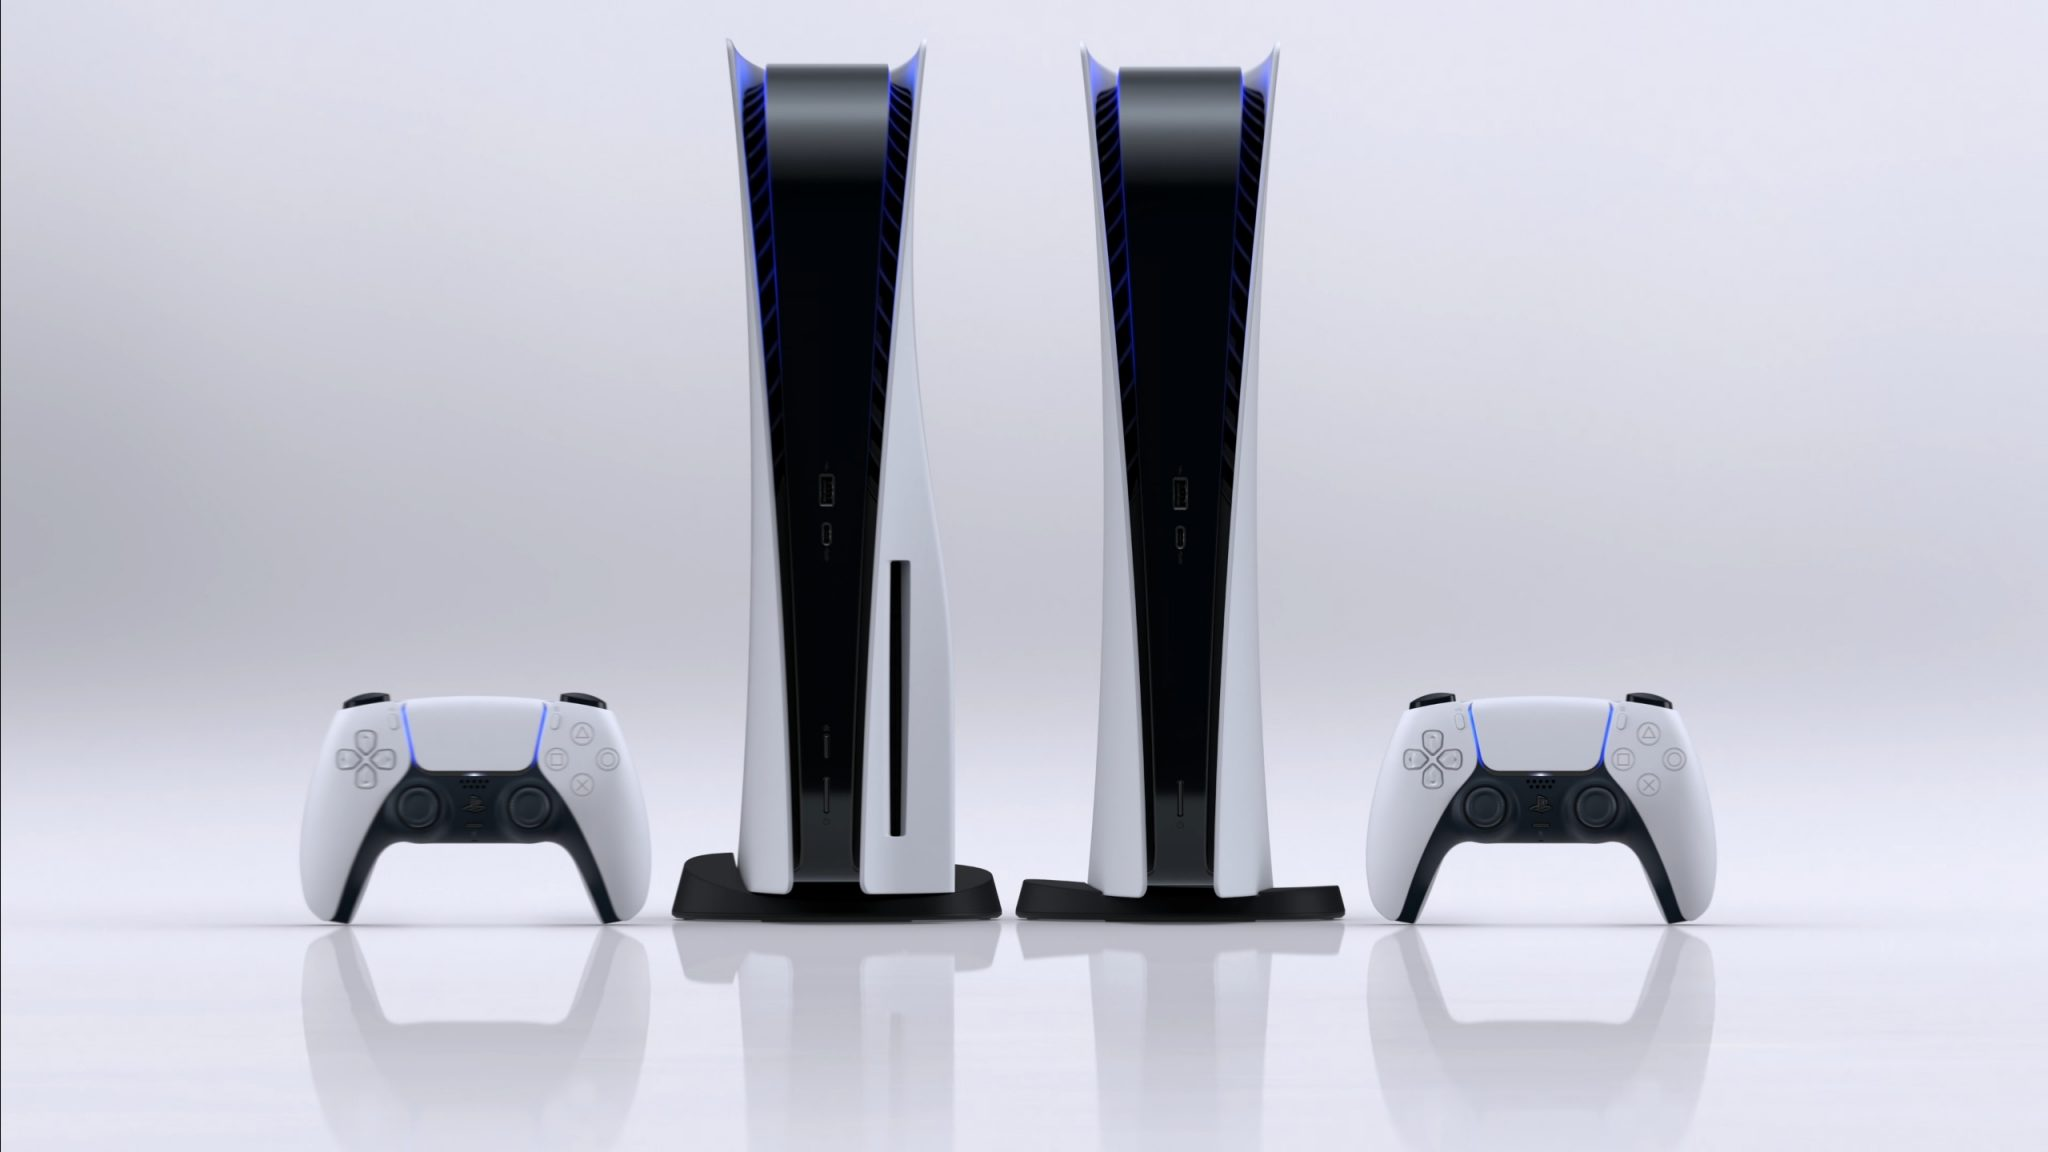 PS5 Sold Out